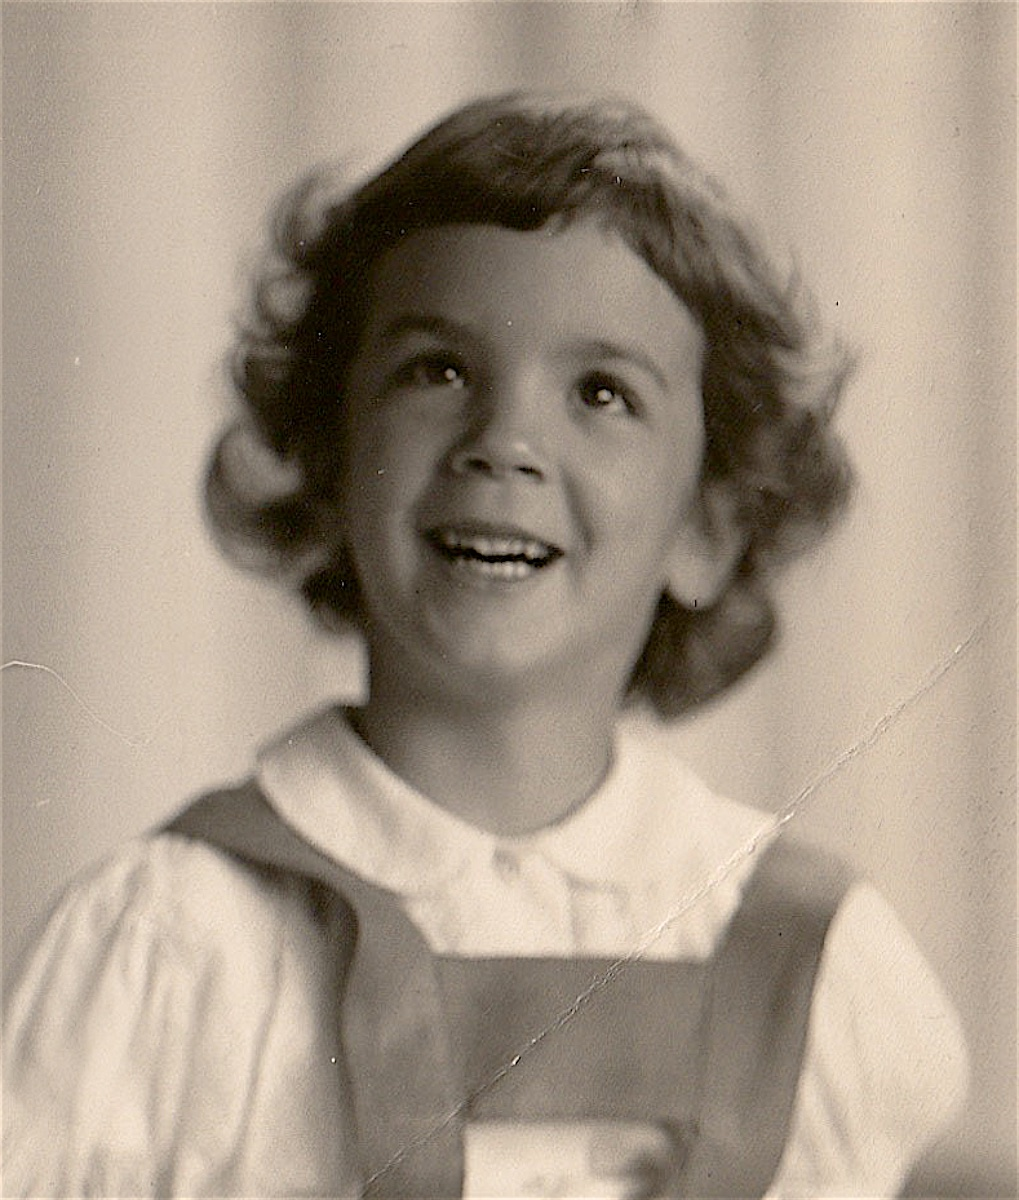 Lisa Esherick 4 years old